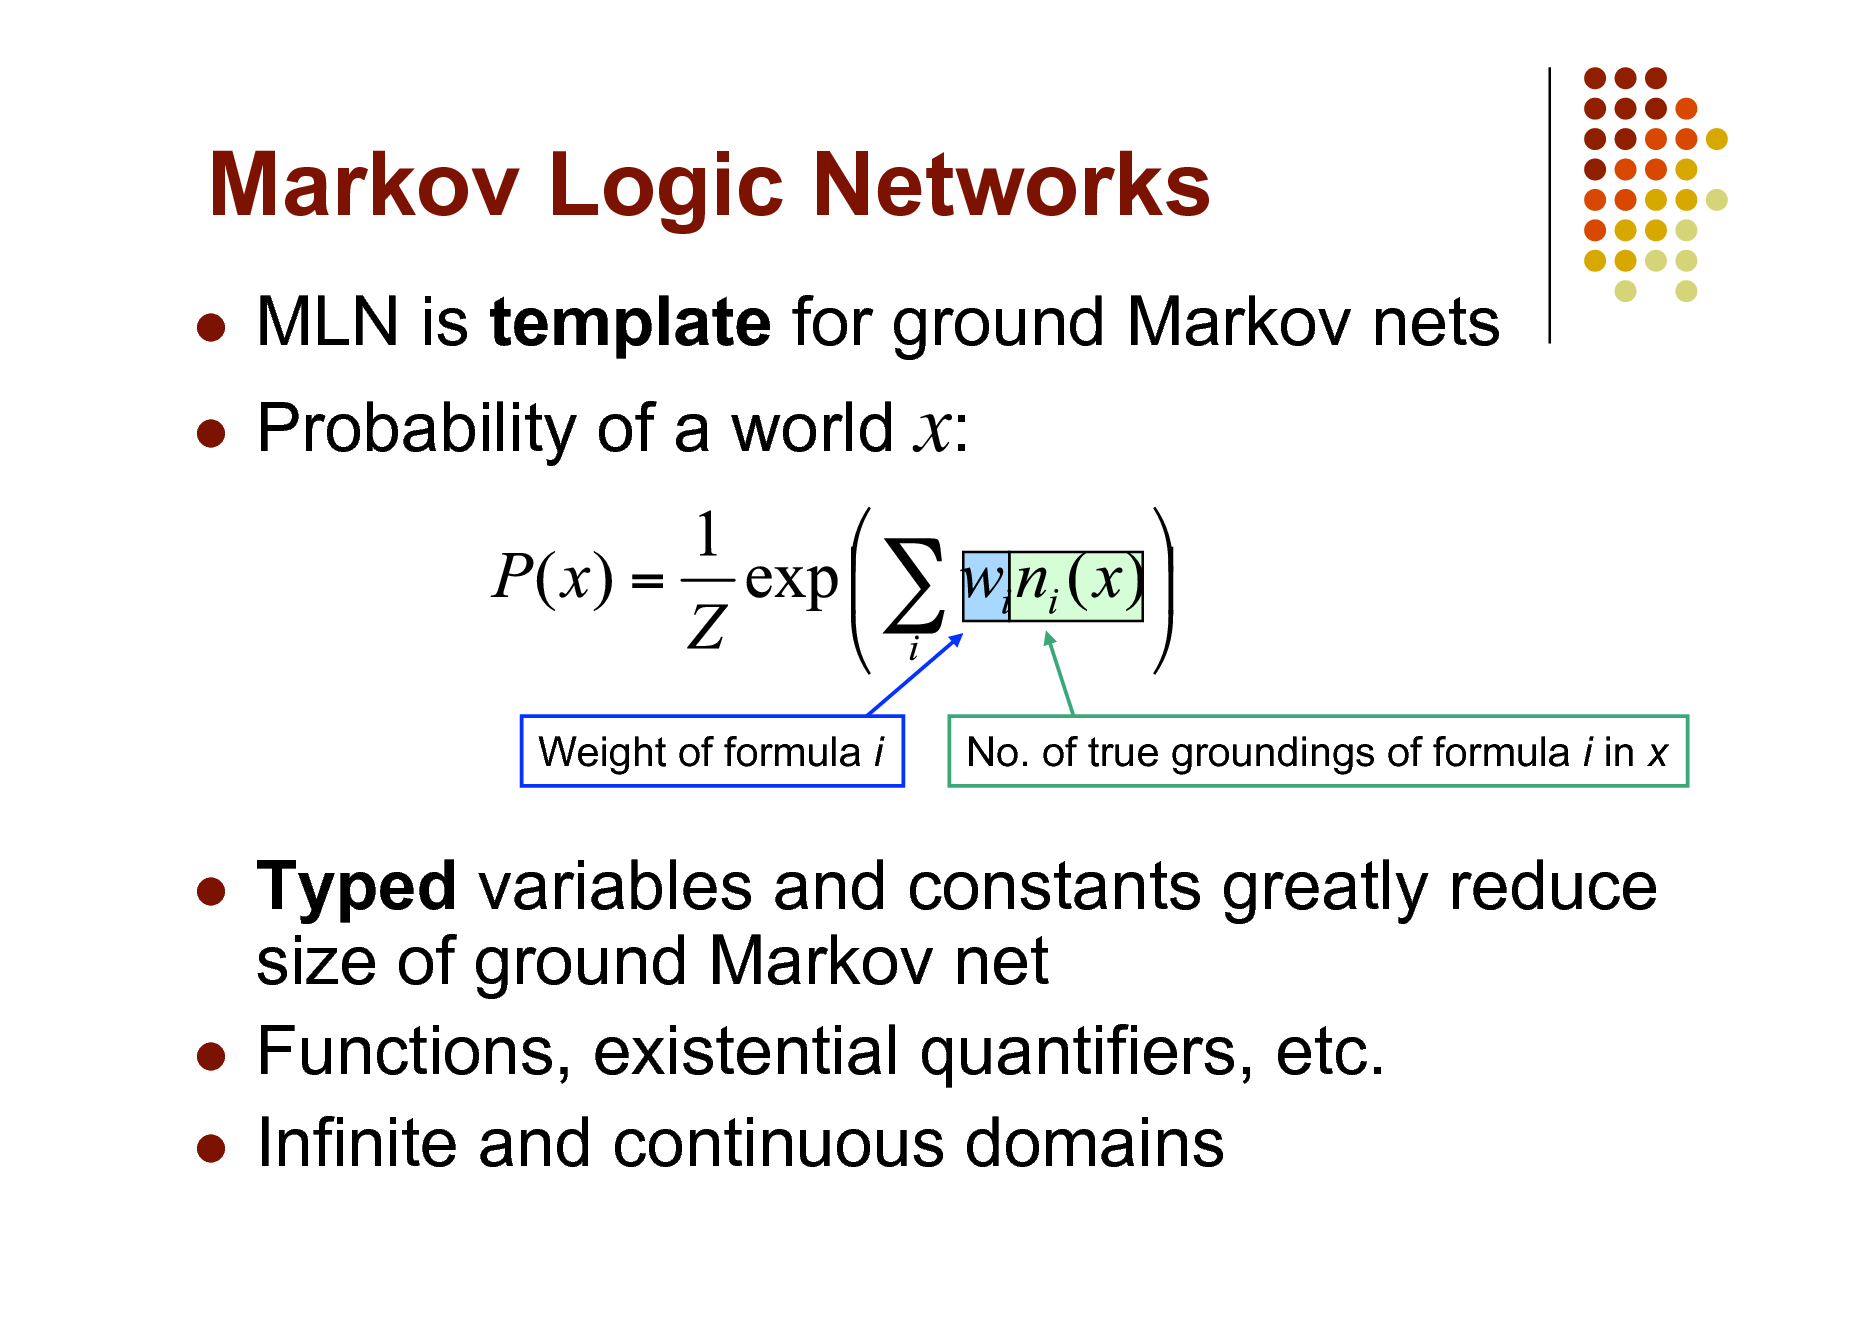 Slide: Markov Logic Networks    MLN is template for ground Markov nets Probability of a world x:  Weight of formula i  No. of true groundings of formula i in x  Typed variables and constants greatly reduce size of ground Markov net  Functions, existential quantifiers, etc.  Infinite and continuous domains